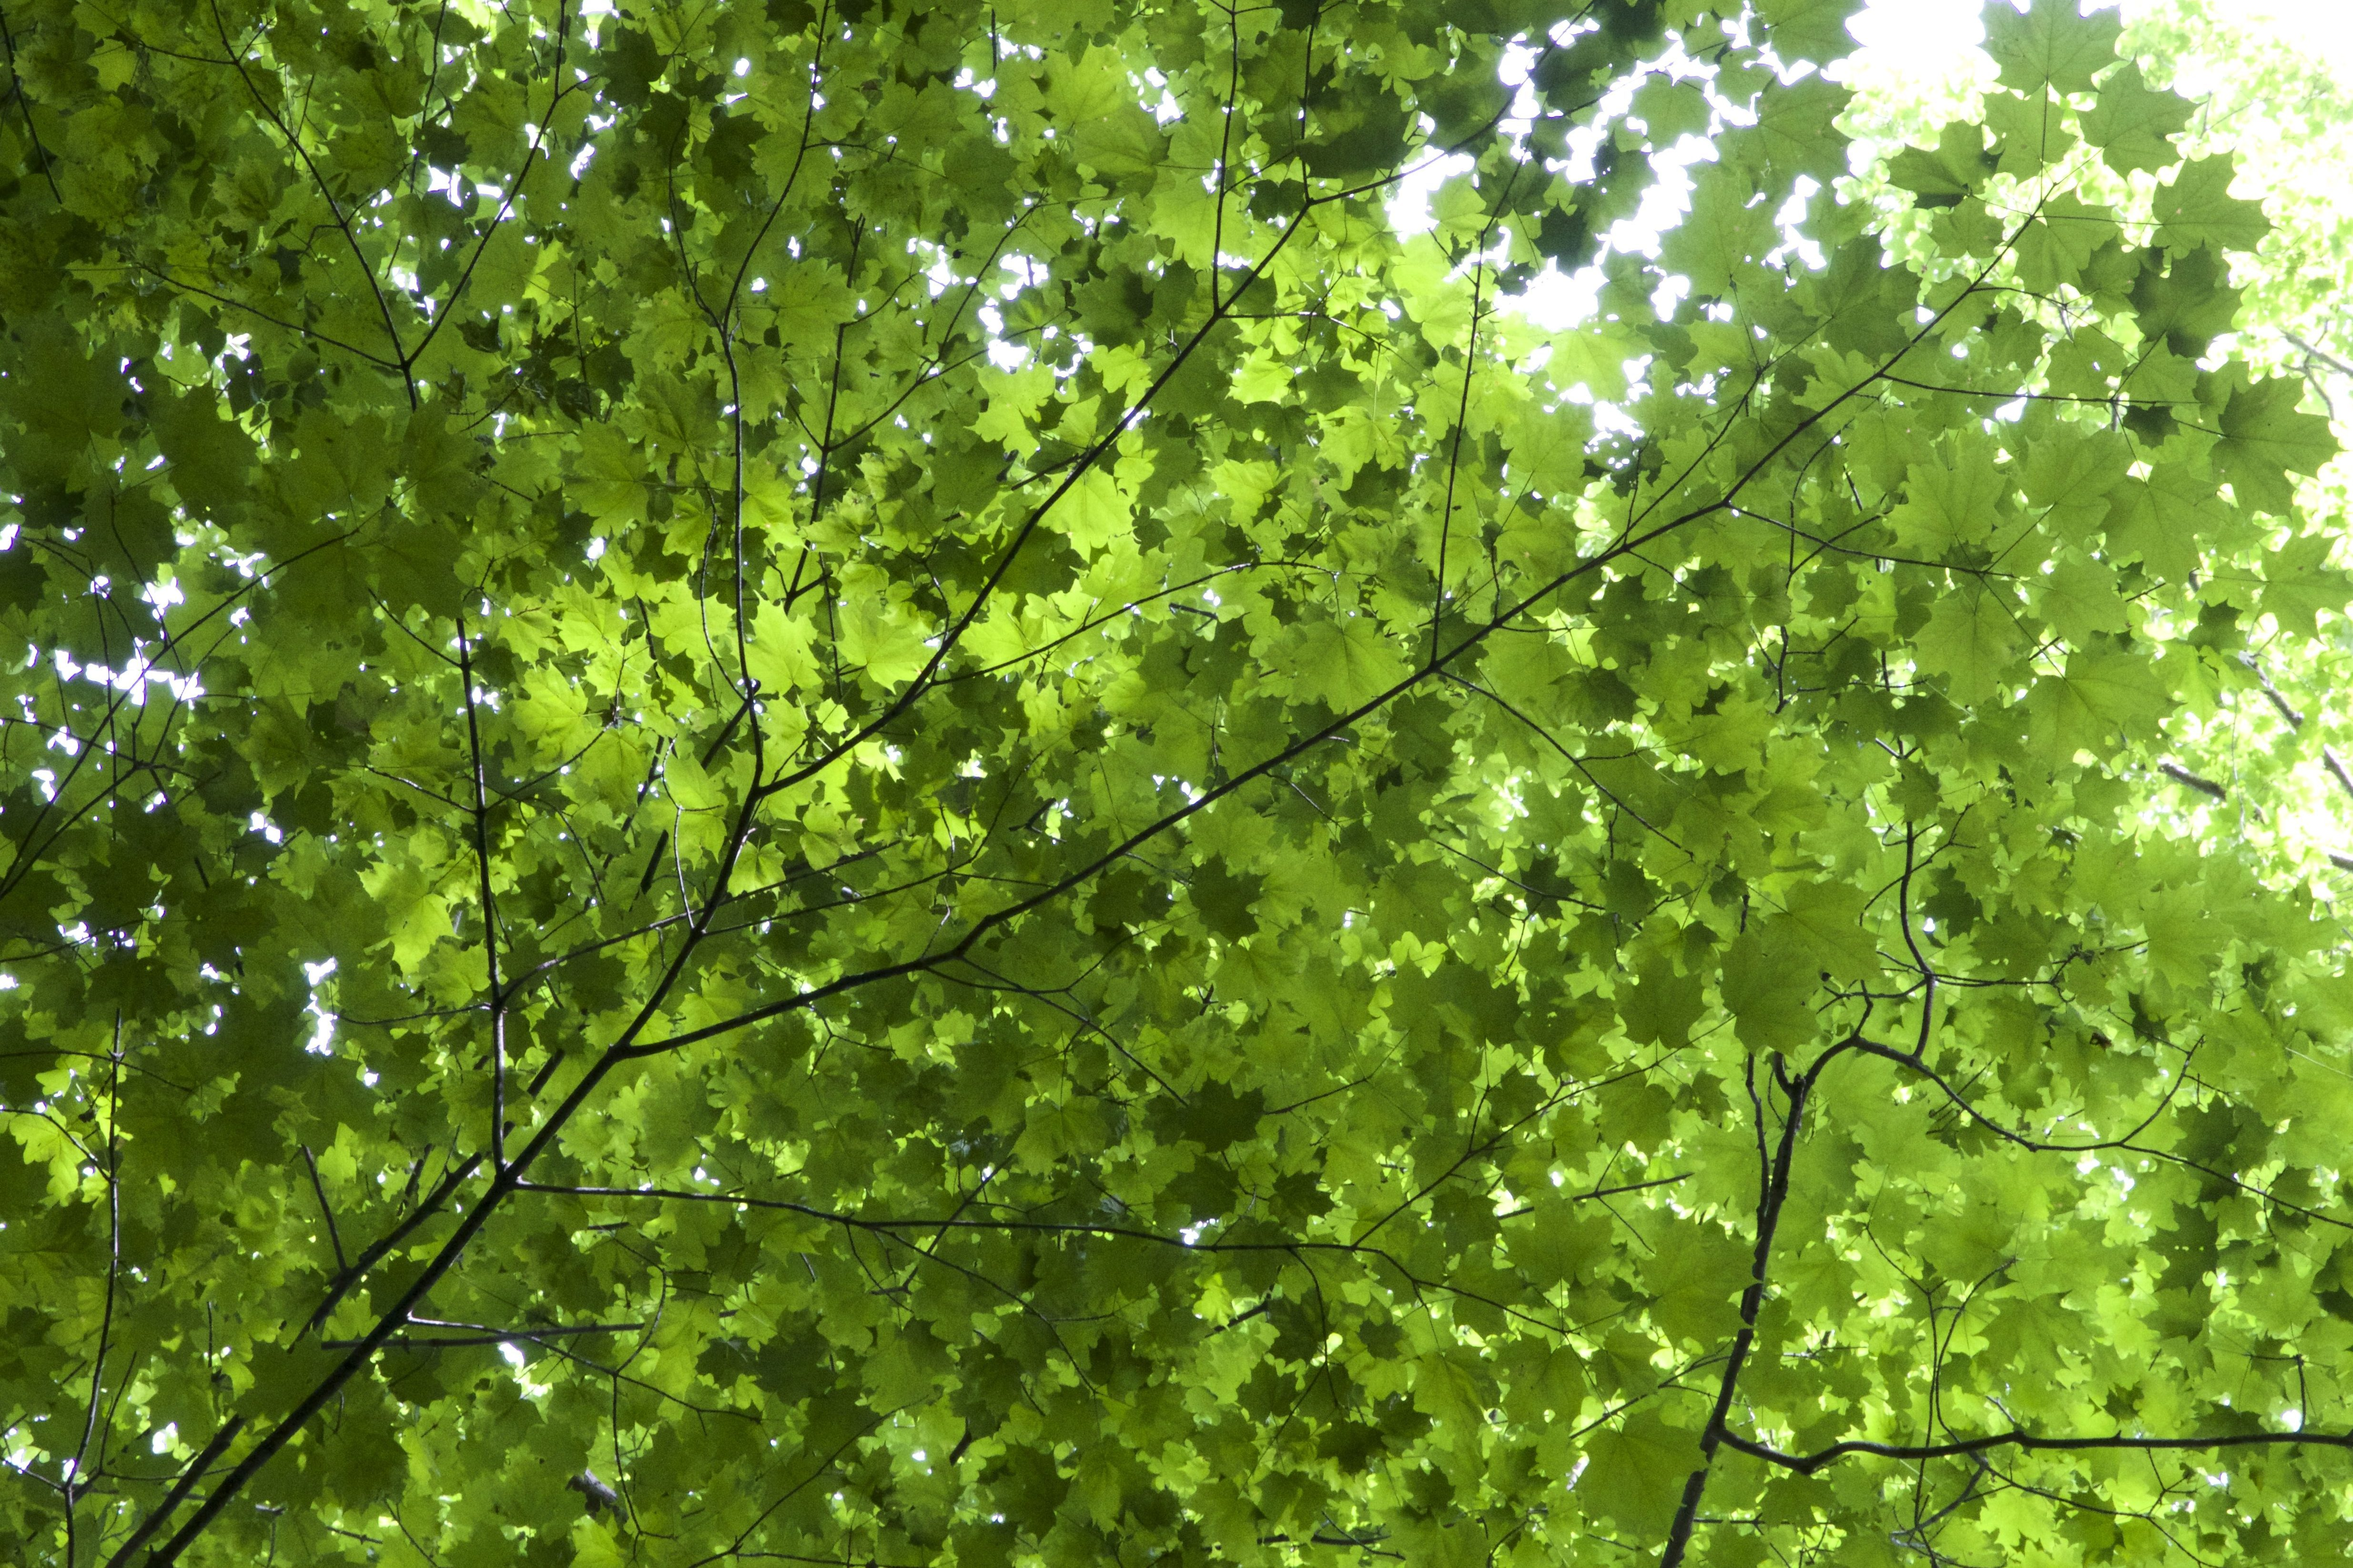 Iphone Collage Wallpaper Maker Free Picture Leaves Texture Green Leaves Under Tree Leaves